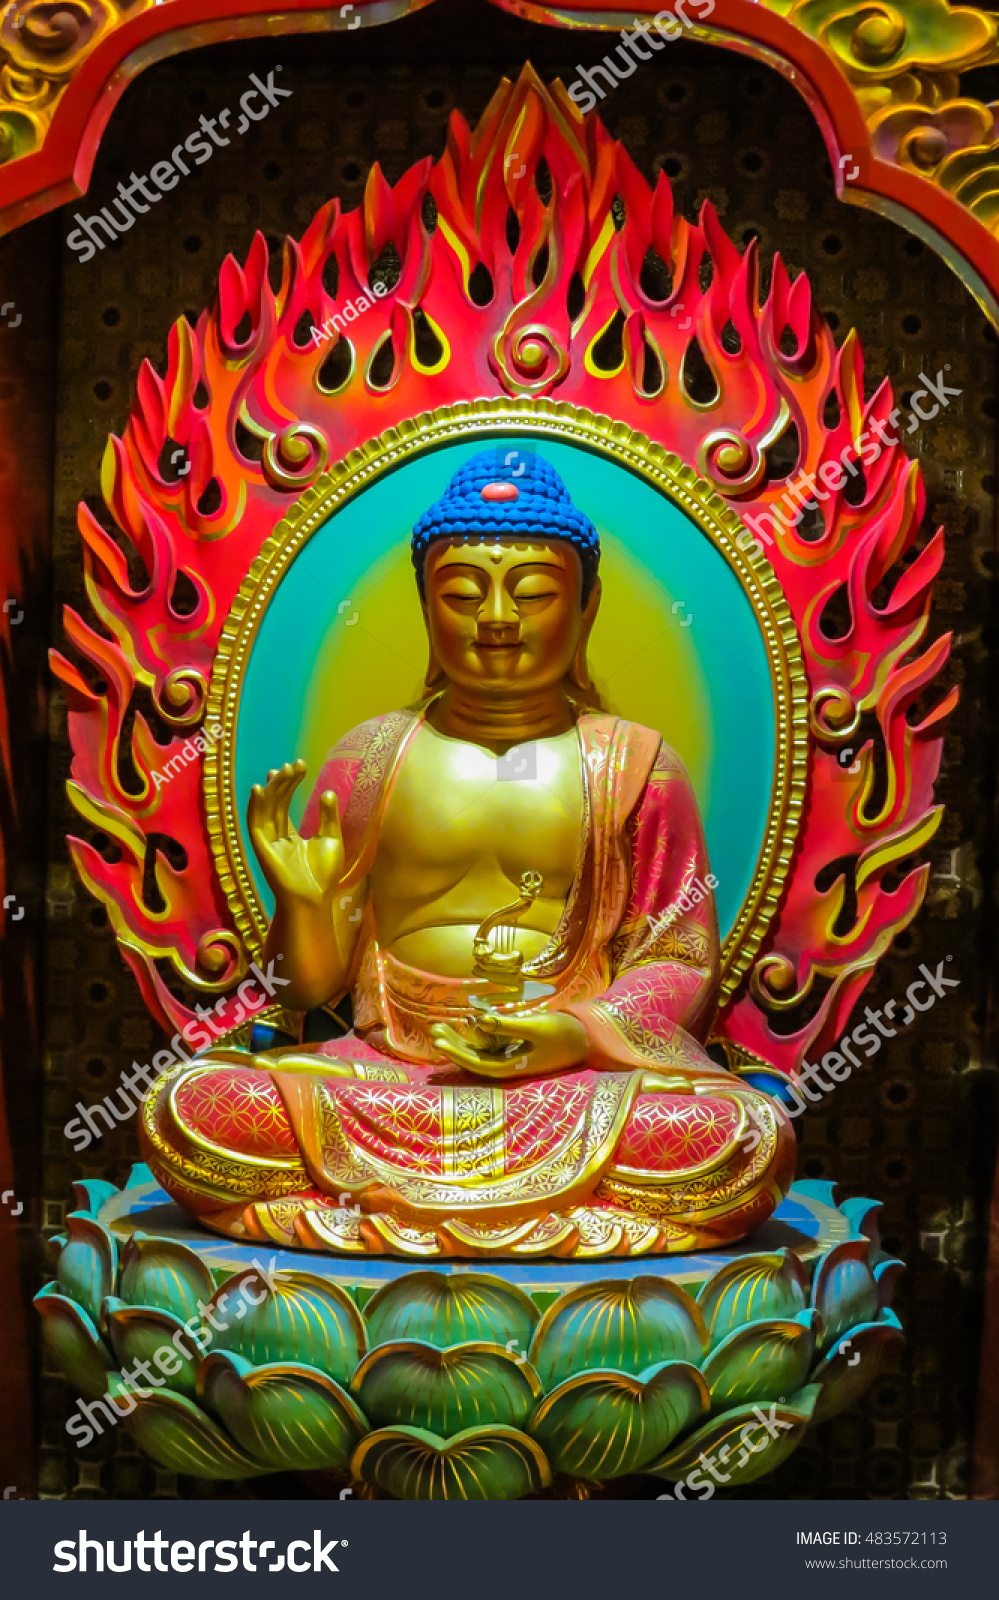 Buddha Image That Is Carved Of Wood Buddha Sitting In A Lotus